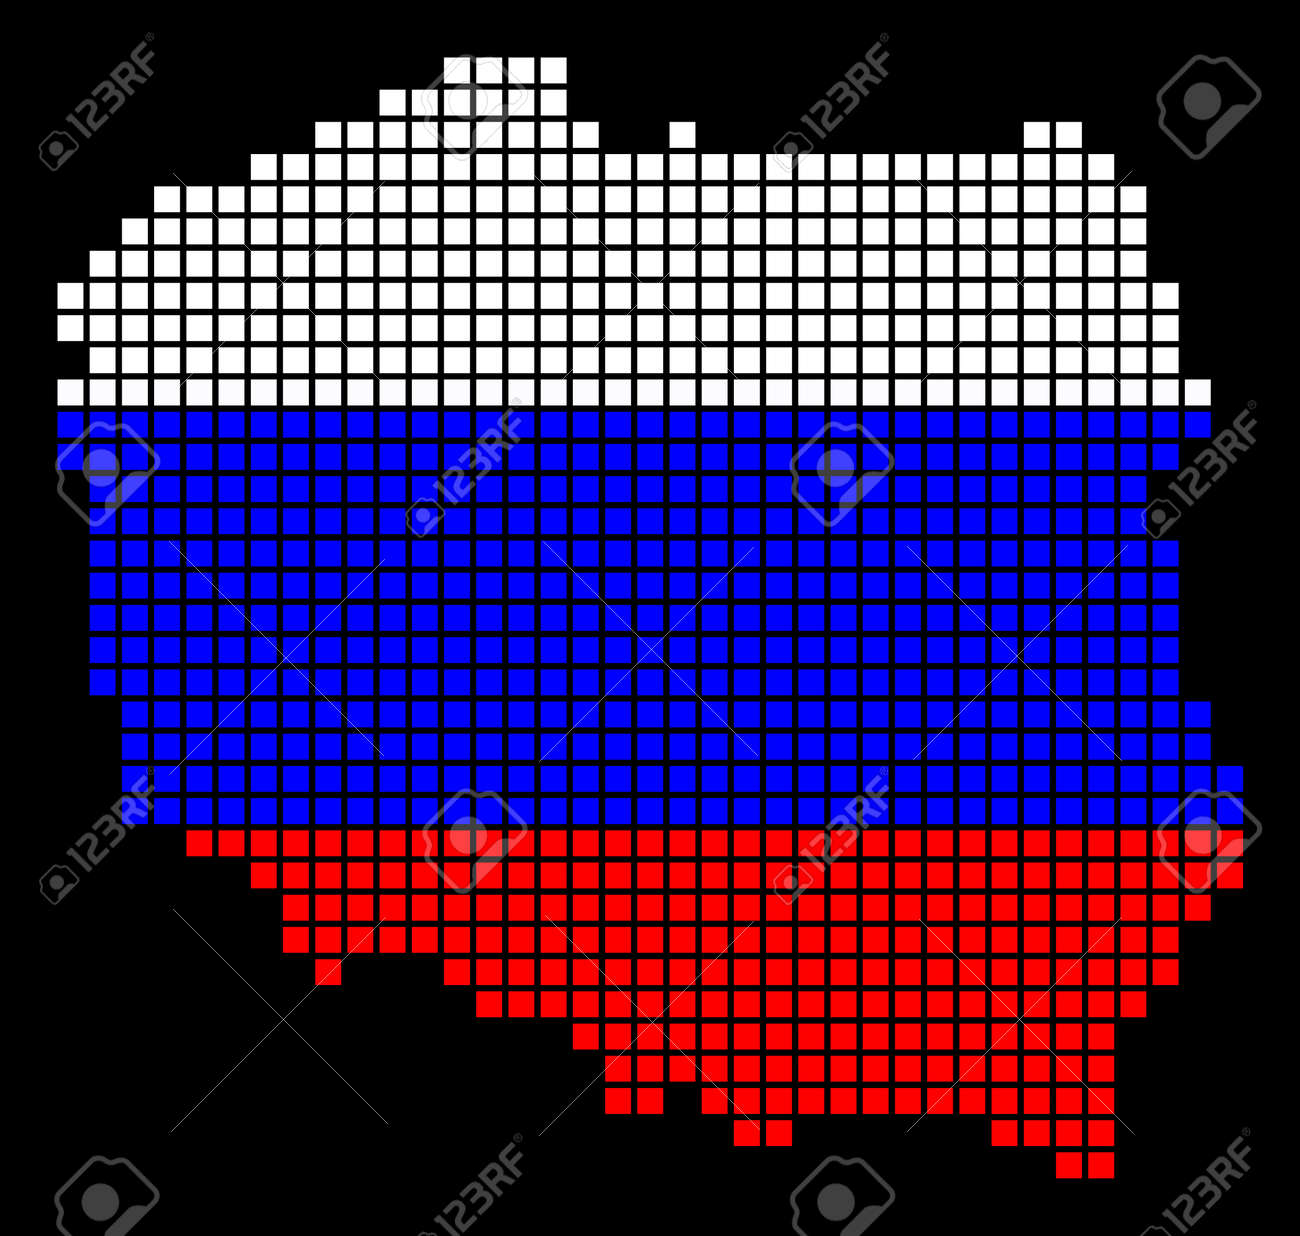 A Dotted Pixel Poland Map. Raster Geographic Map In Russia Flag ...